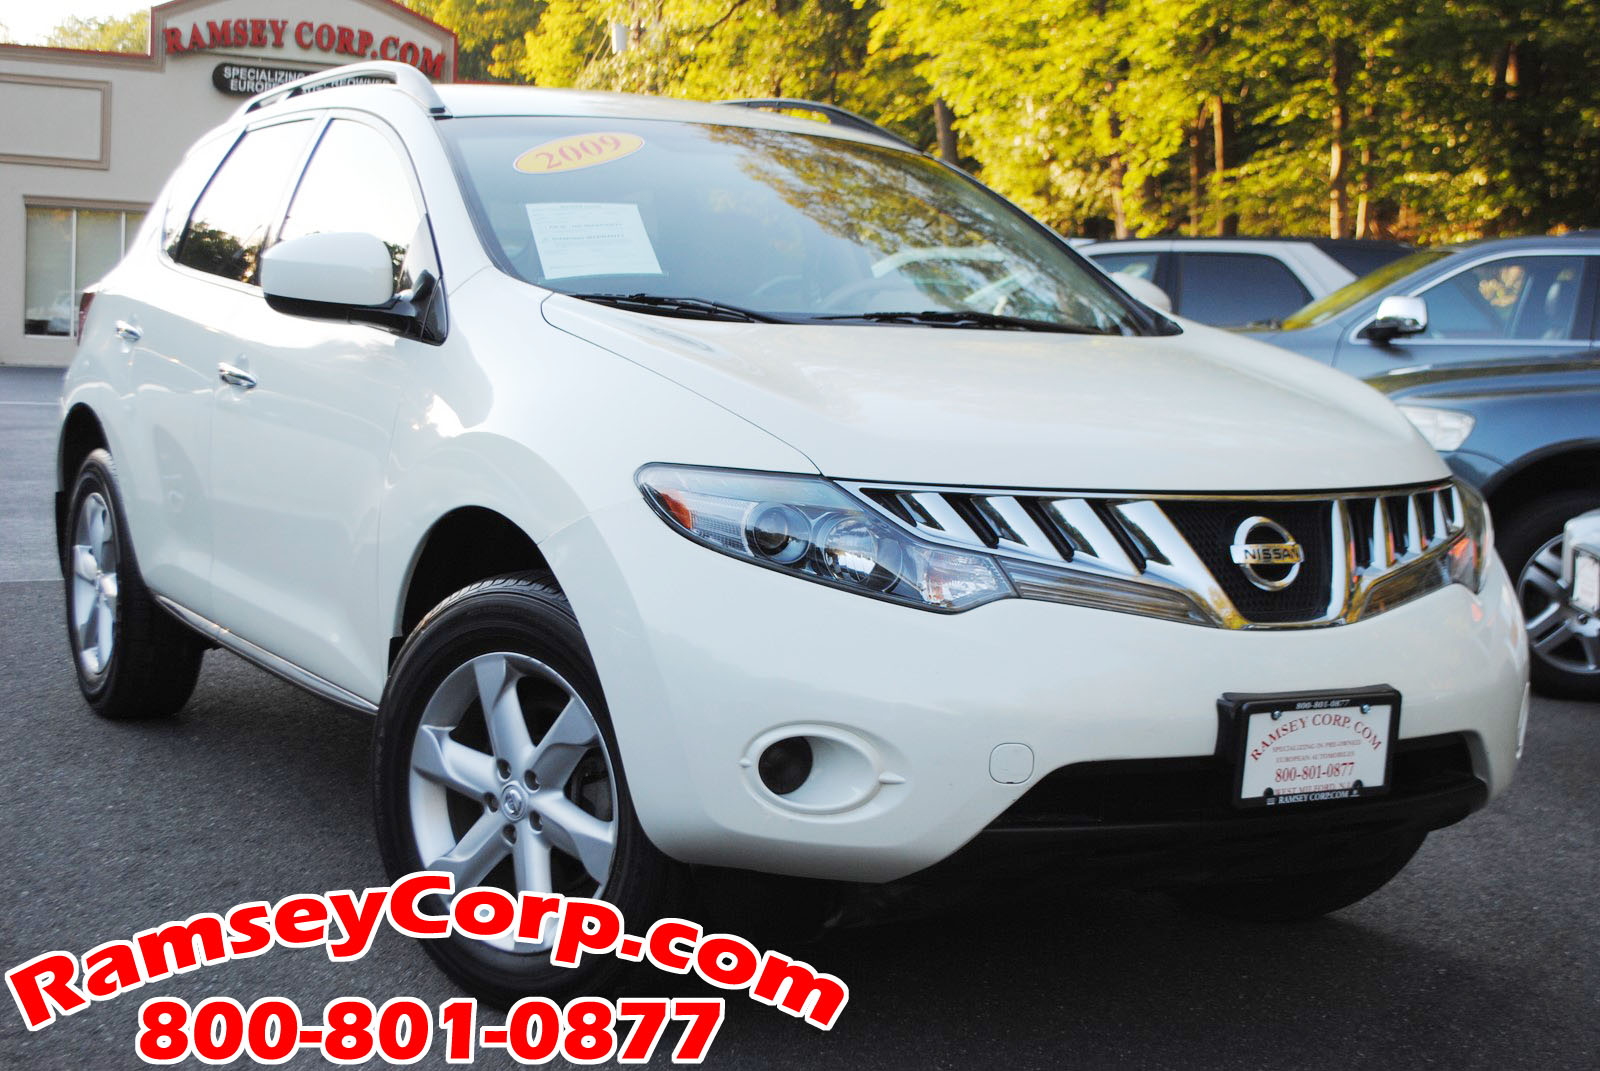 Used 2009 nissan murano for sale west milford nj 2009 nissan murano s 35 suv vanachro Image collections